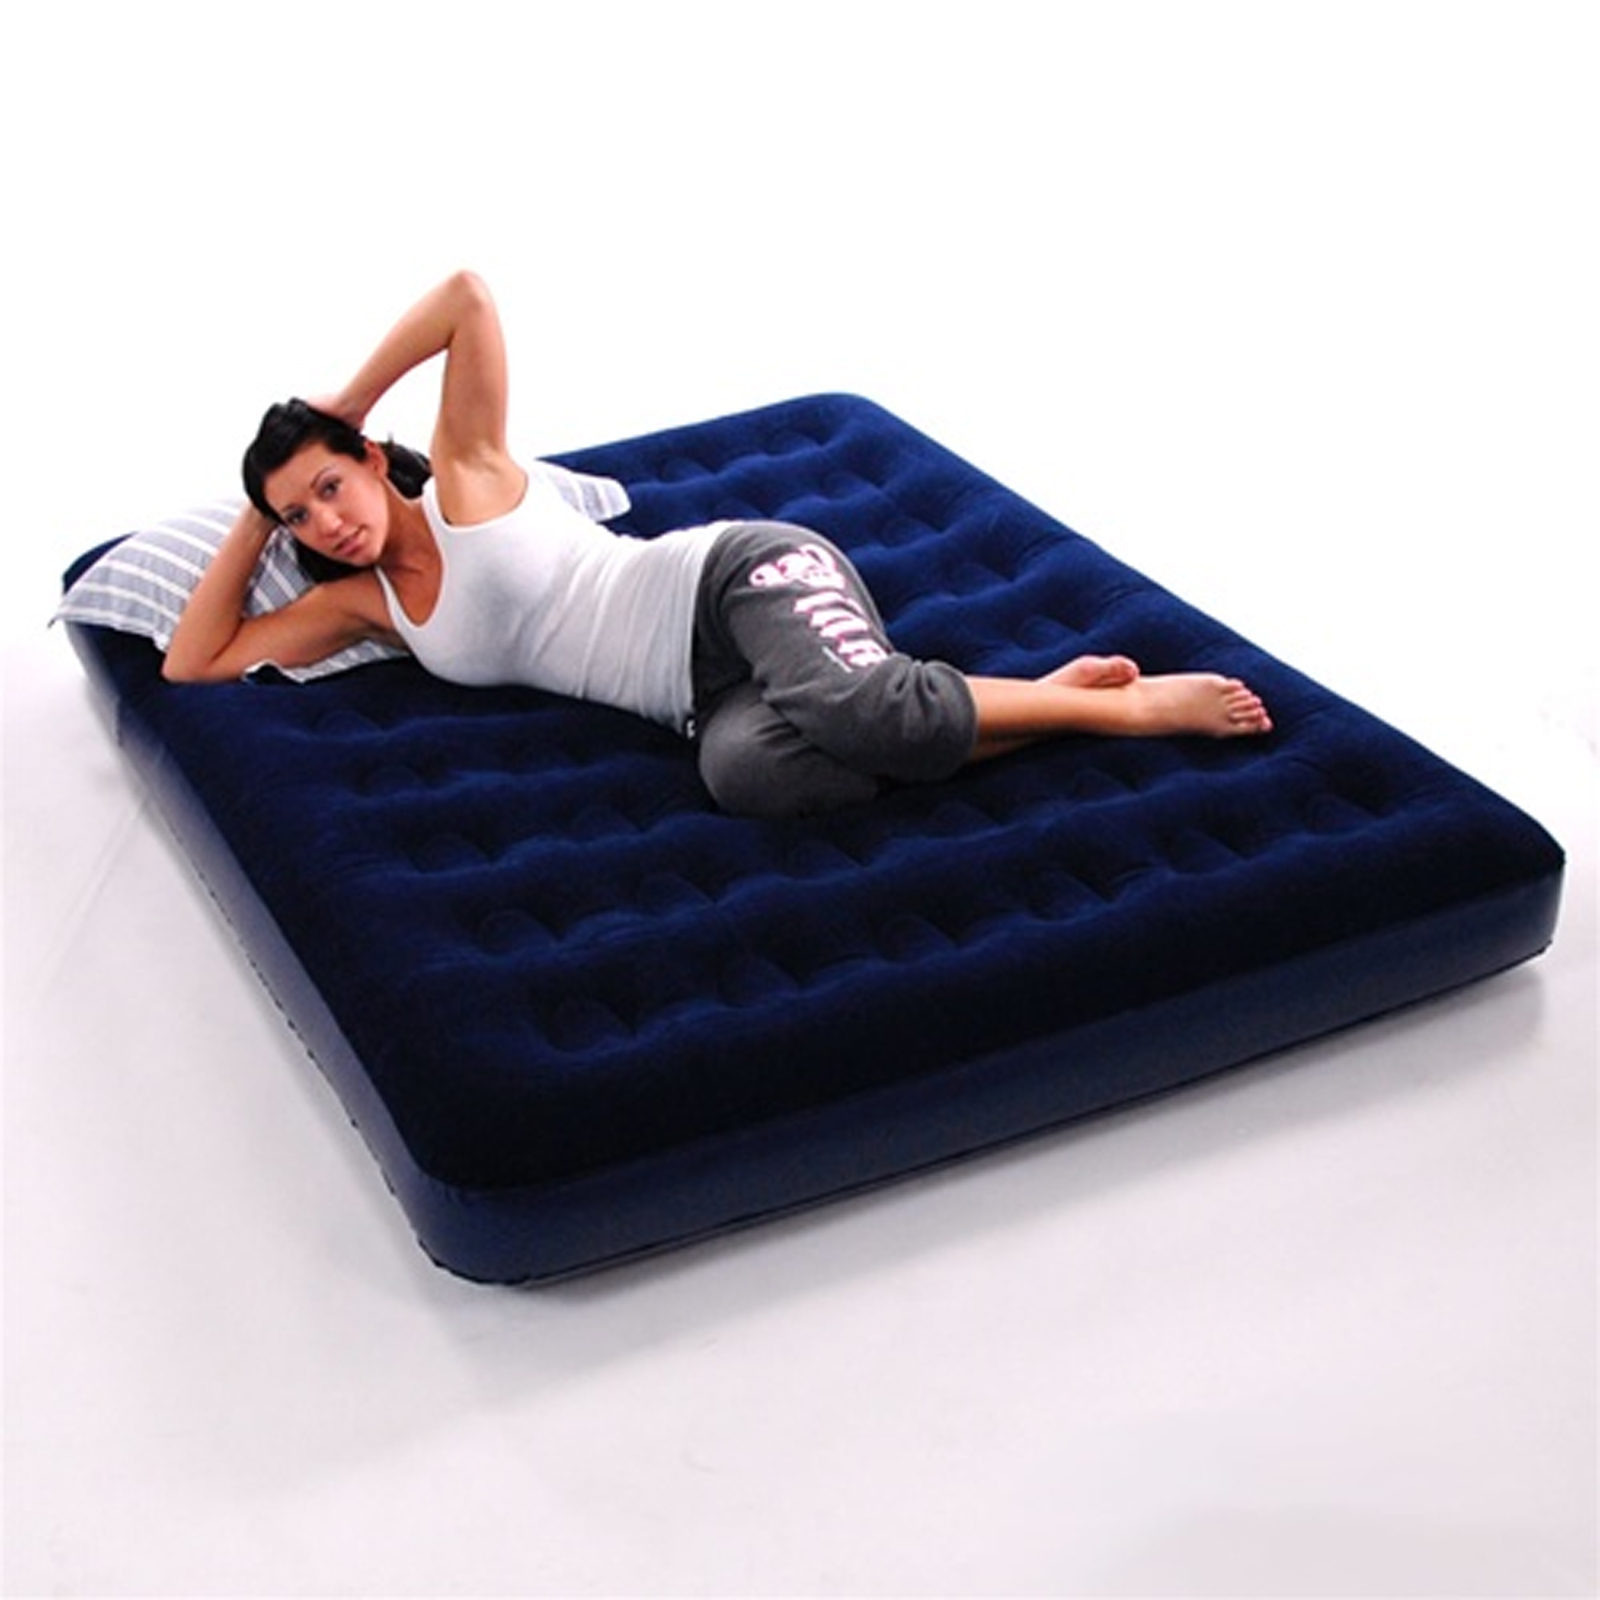 double inflatable flocked blow up air bed airbed guest. Black Bedroom Furniture Sets. Home Design Ideas